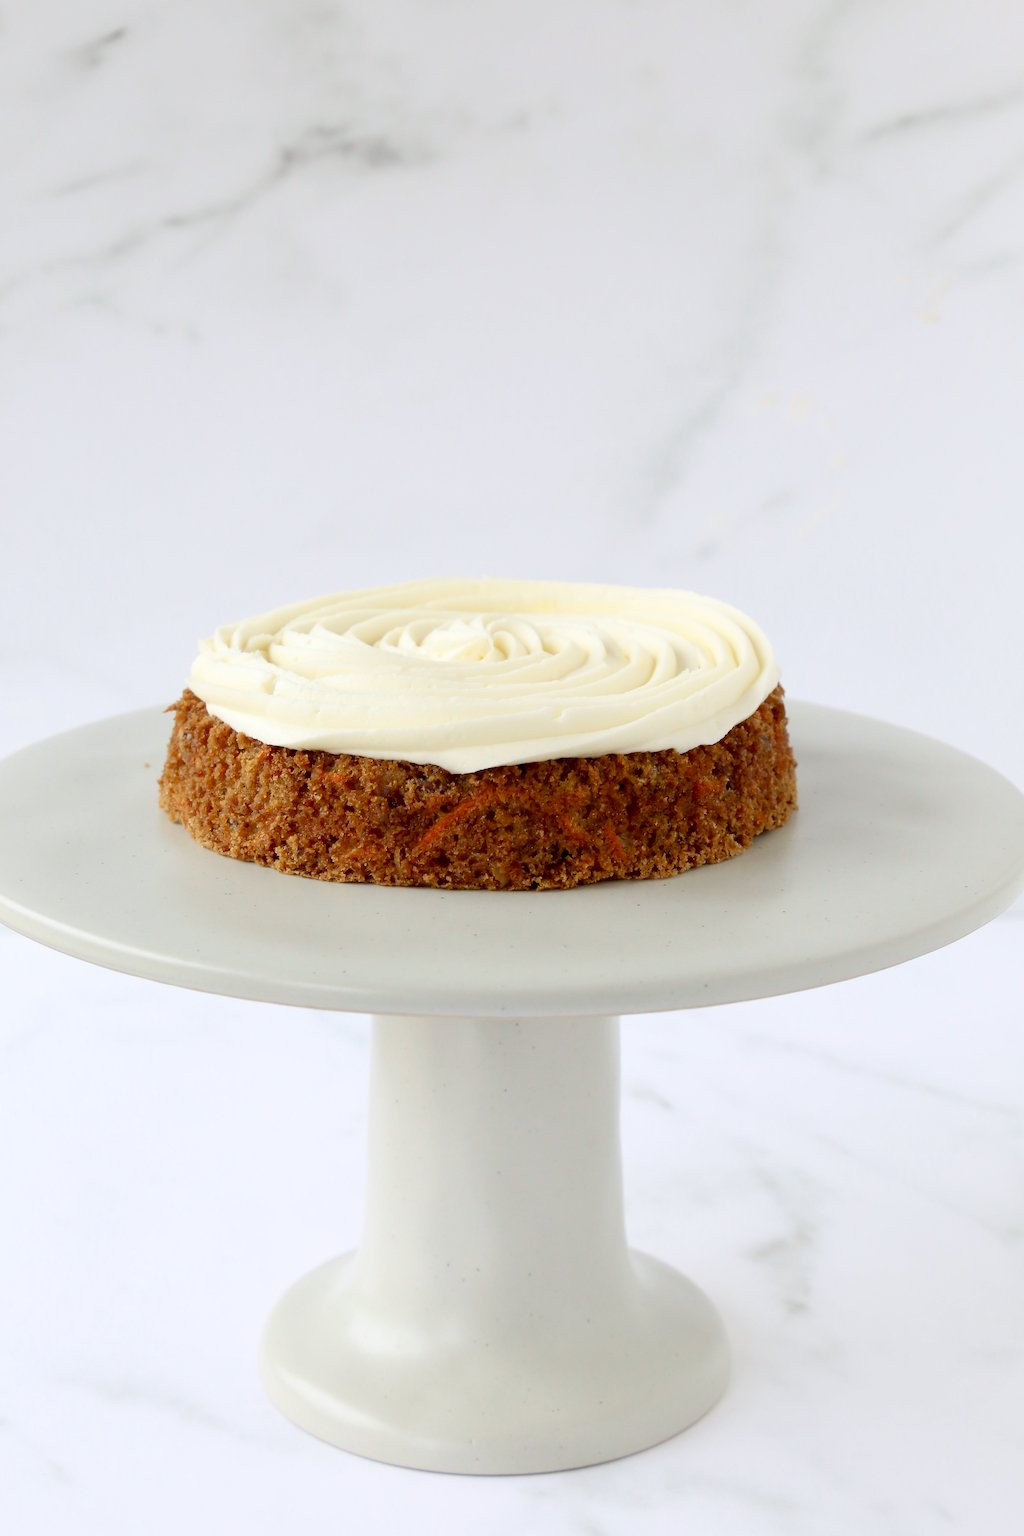 one layer of carrot cake with cream cheese frosting on a cake stand